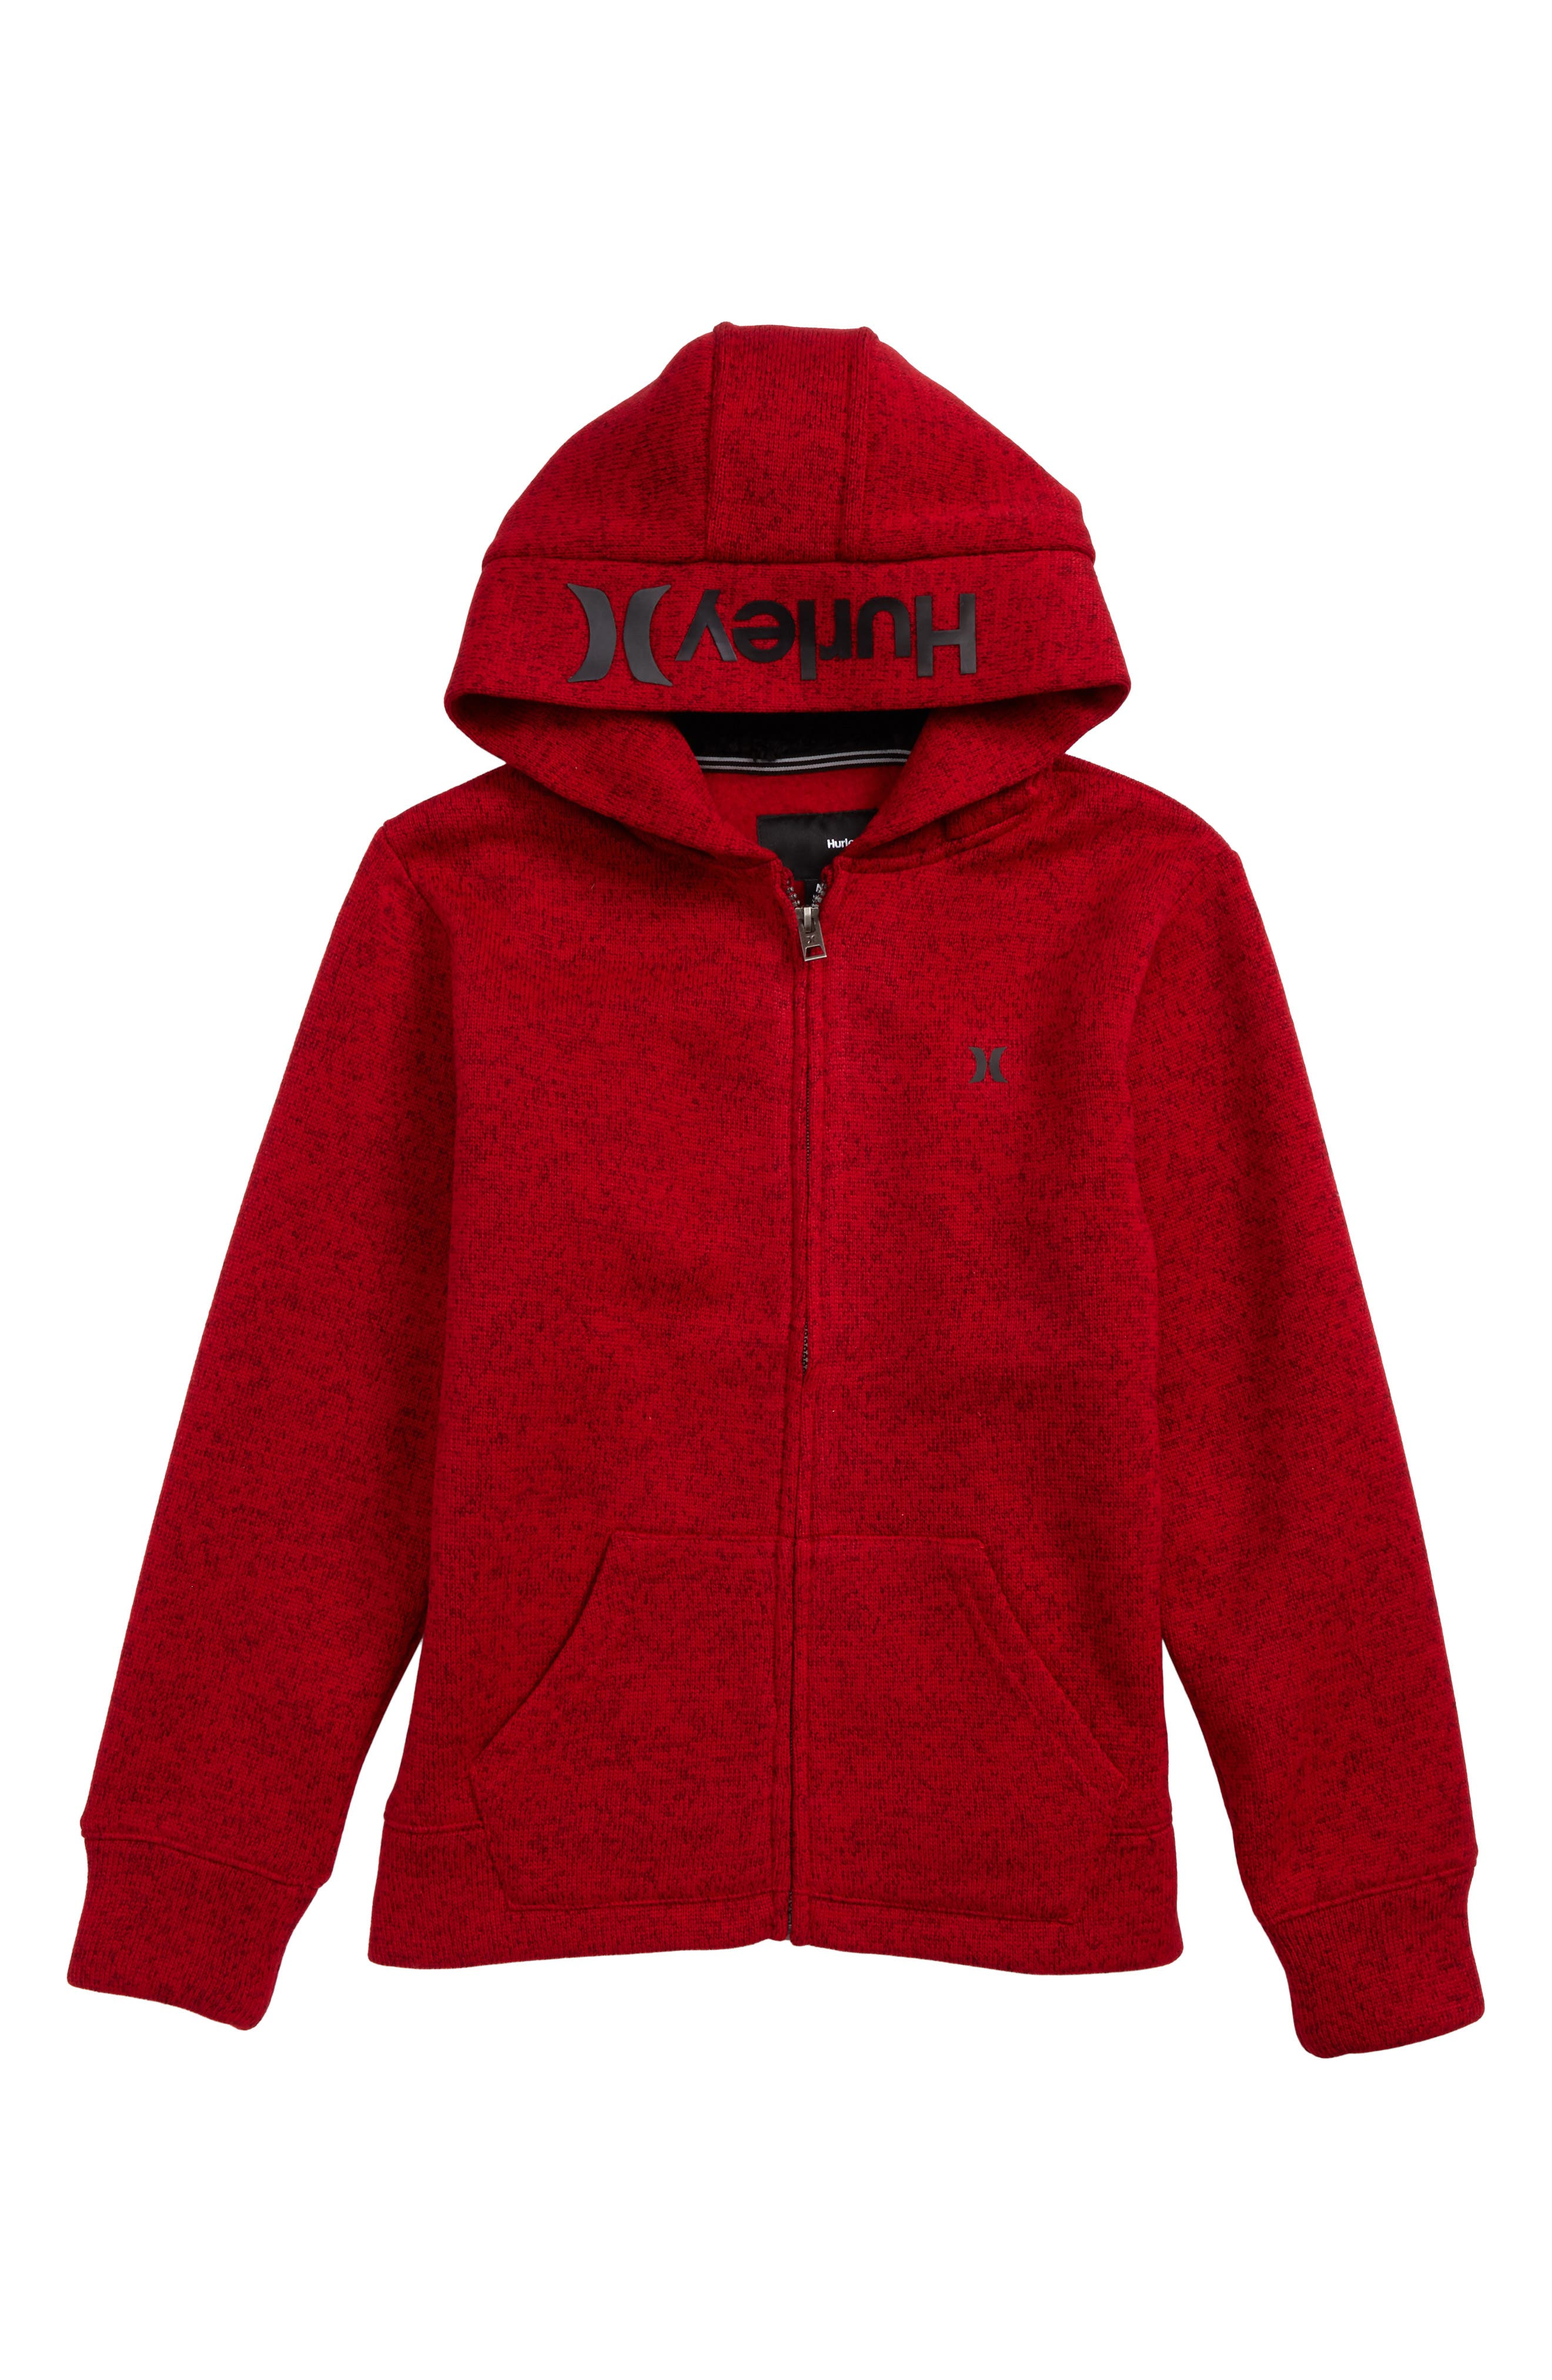 Knit Fleece Zip Hoodie,                             Main thumbnail 1, color,                             Flash Red